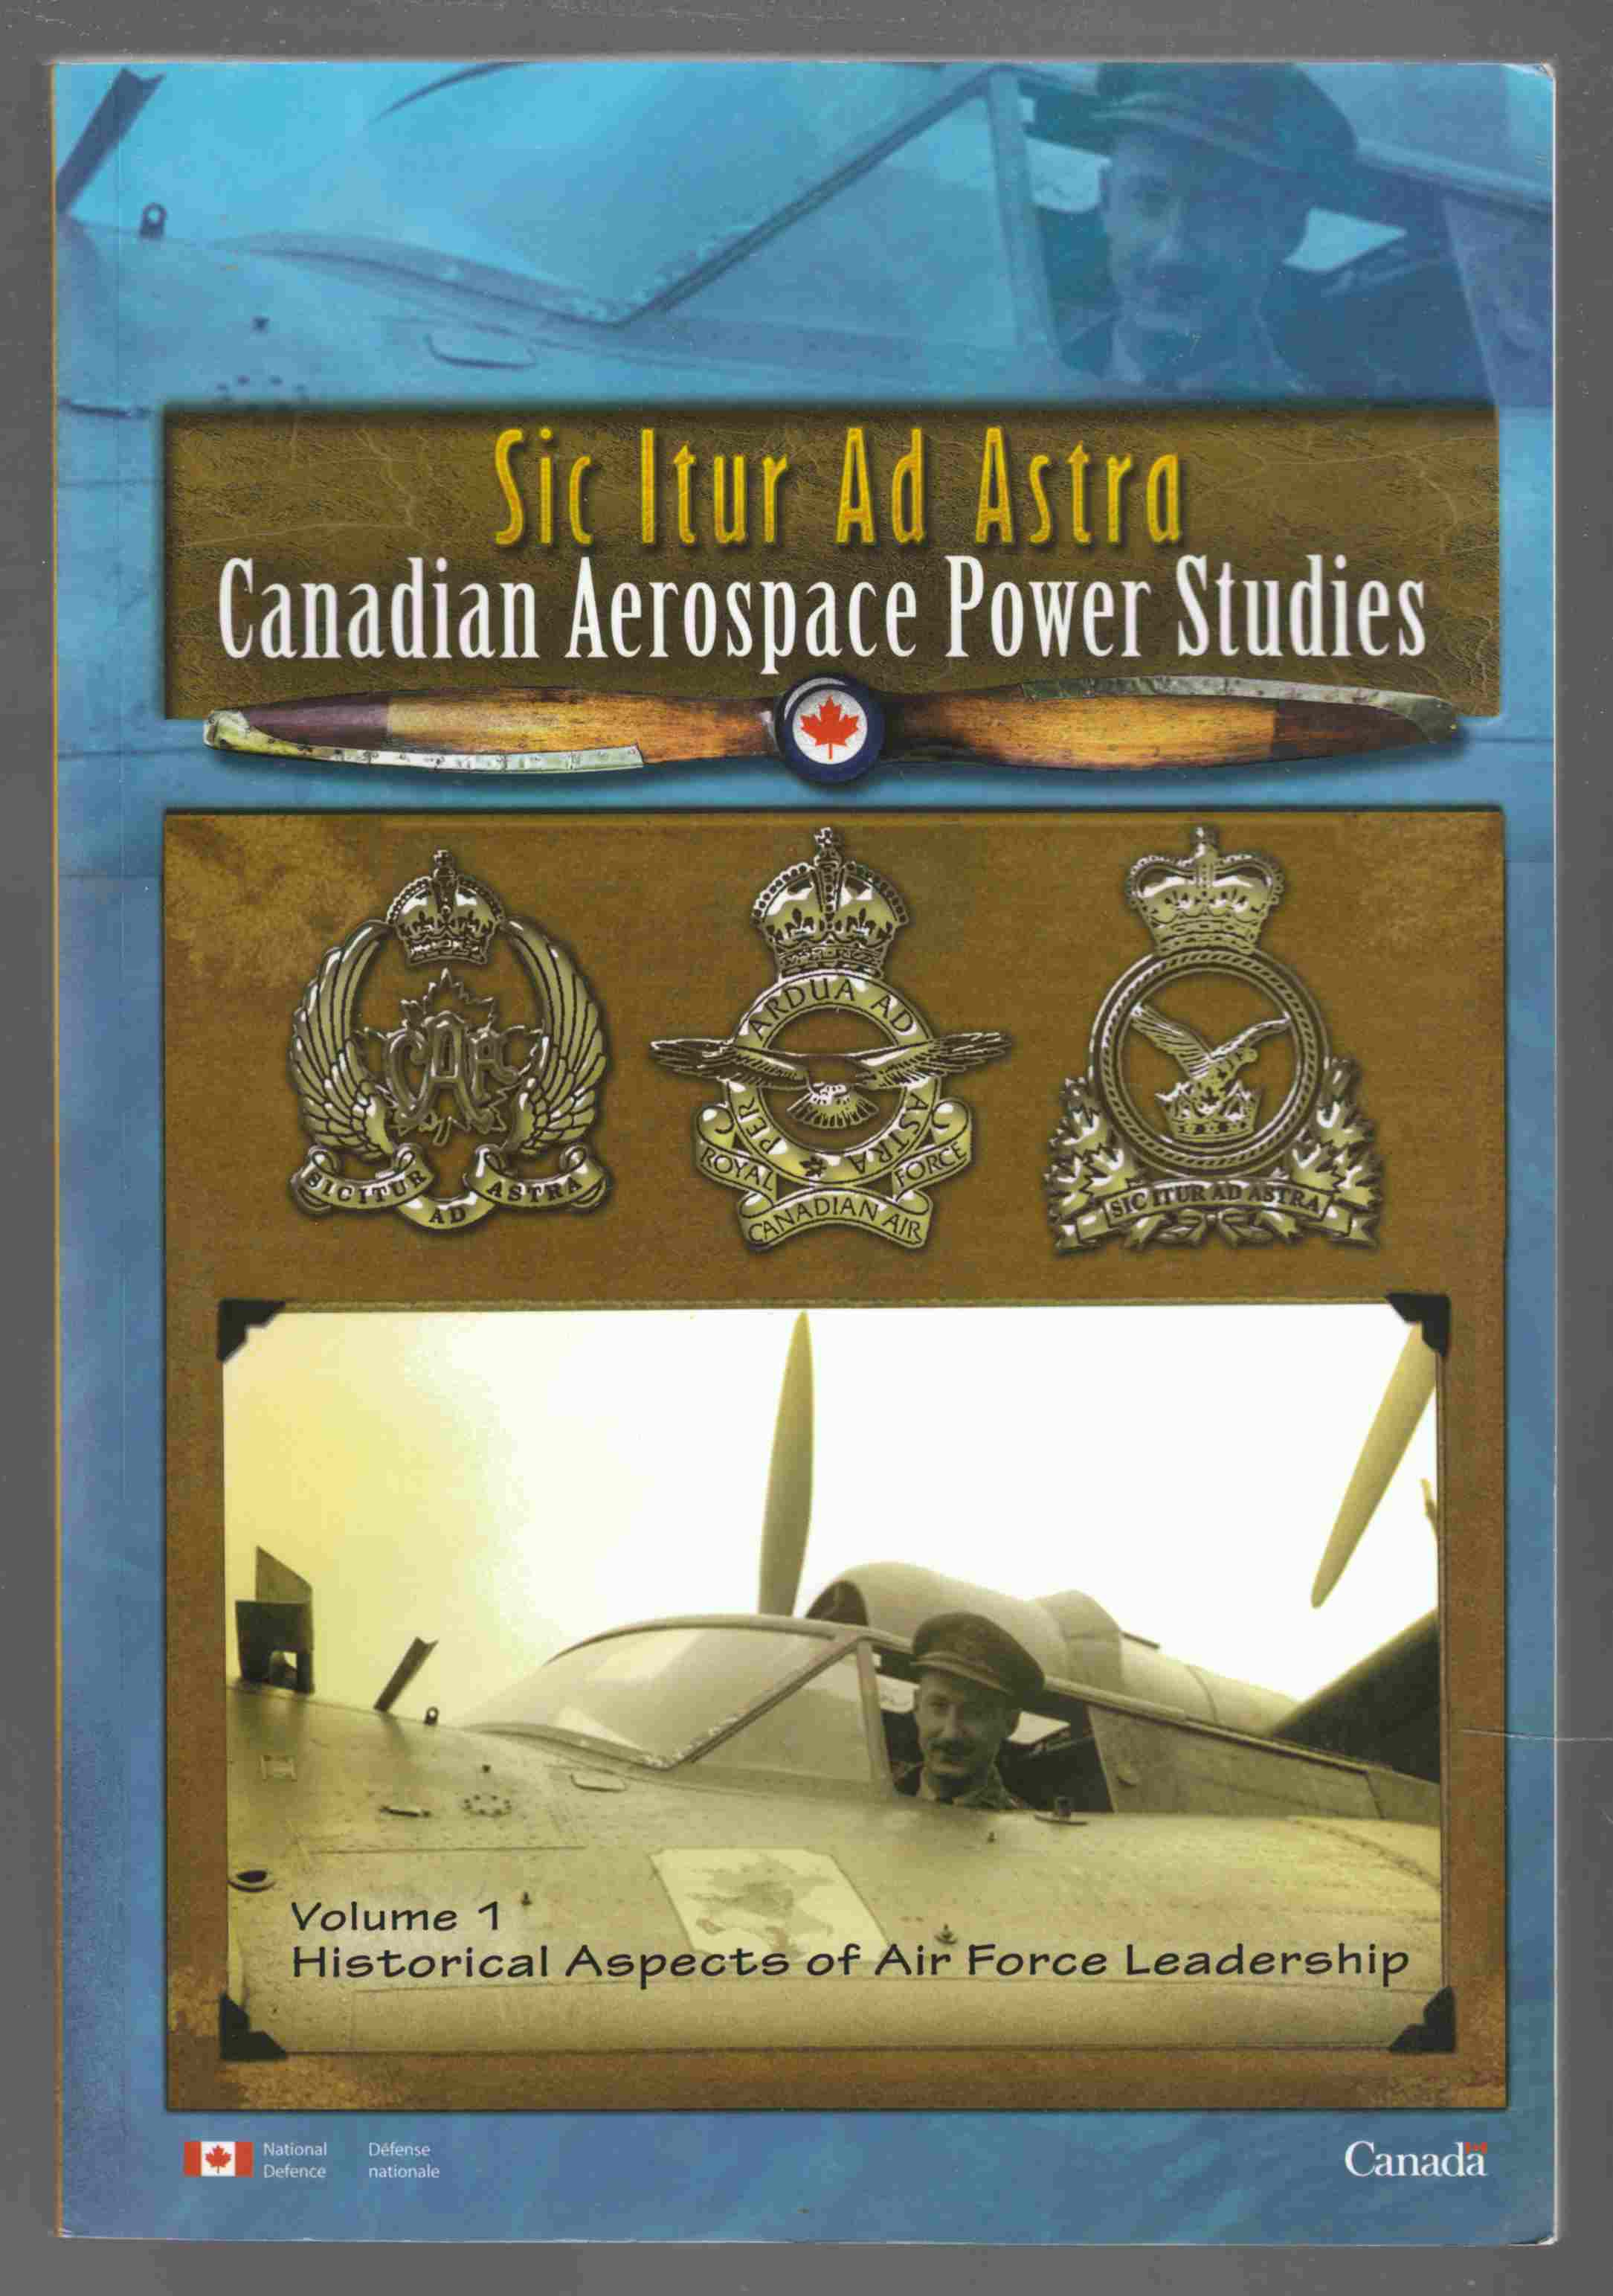 Image for Sic Itur Ad Astra: Canadian Aerospace Power Studies / Etudes Sur La Puissance Aerospatiale Canadienne Volume 1: Historical Aspects of Air Force Leadership / Aspects Historiques Du Leadership Dans La Force Arienne